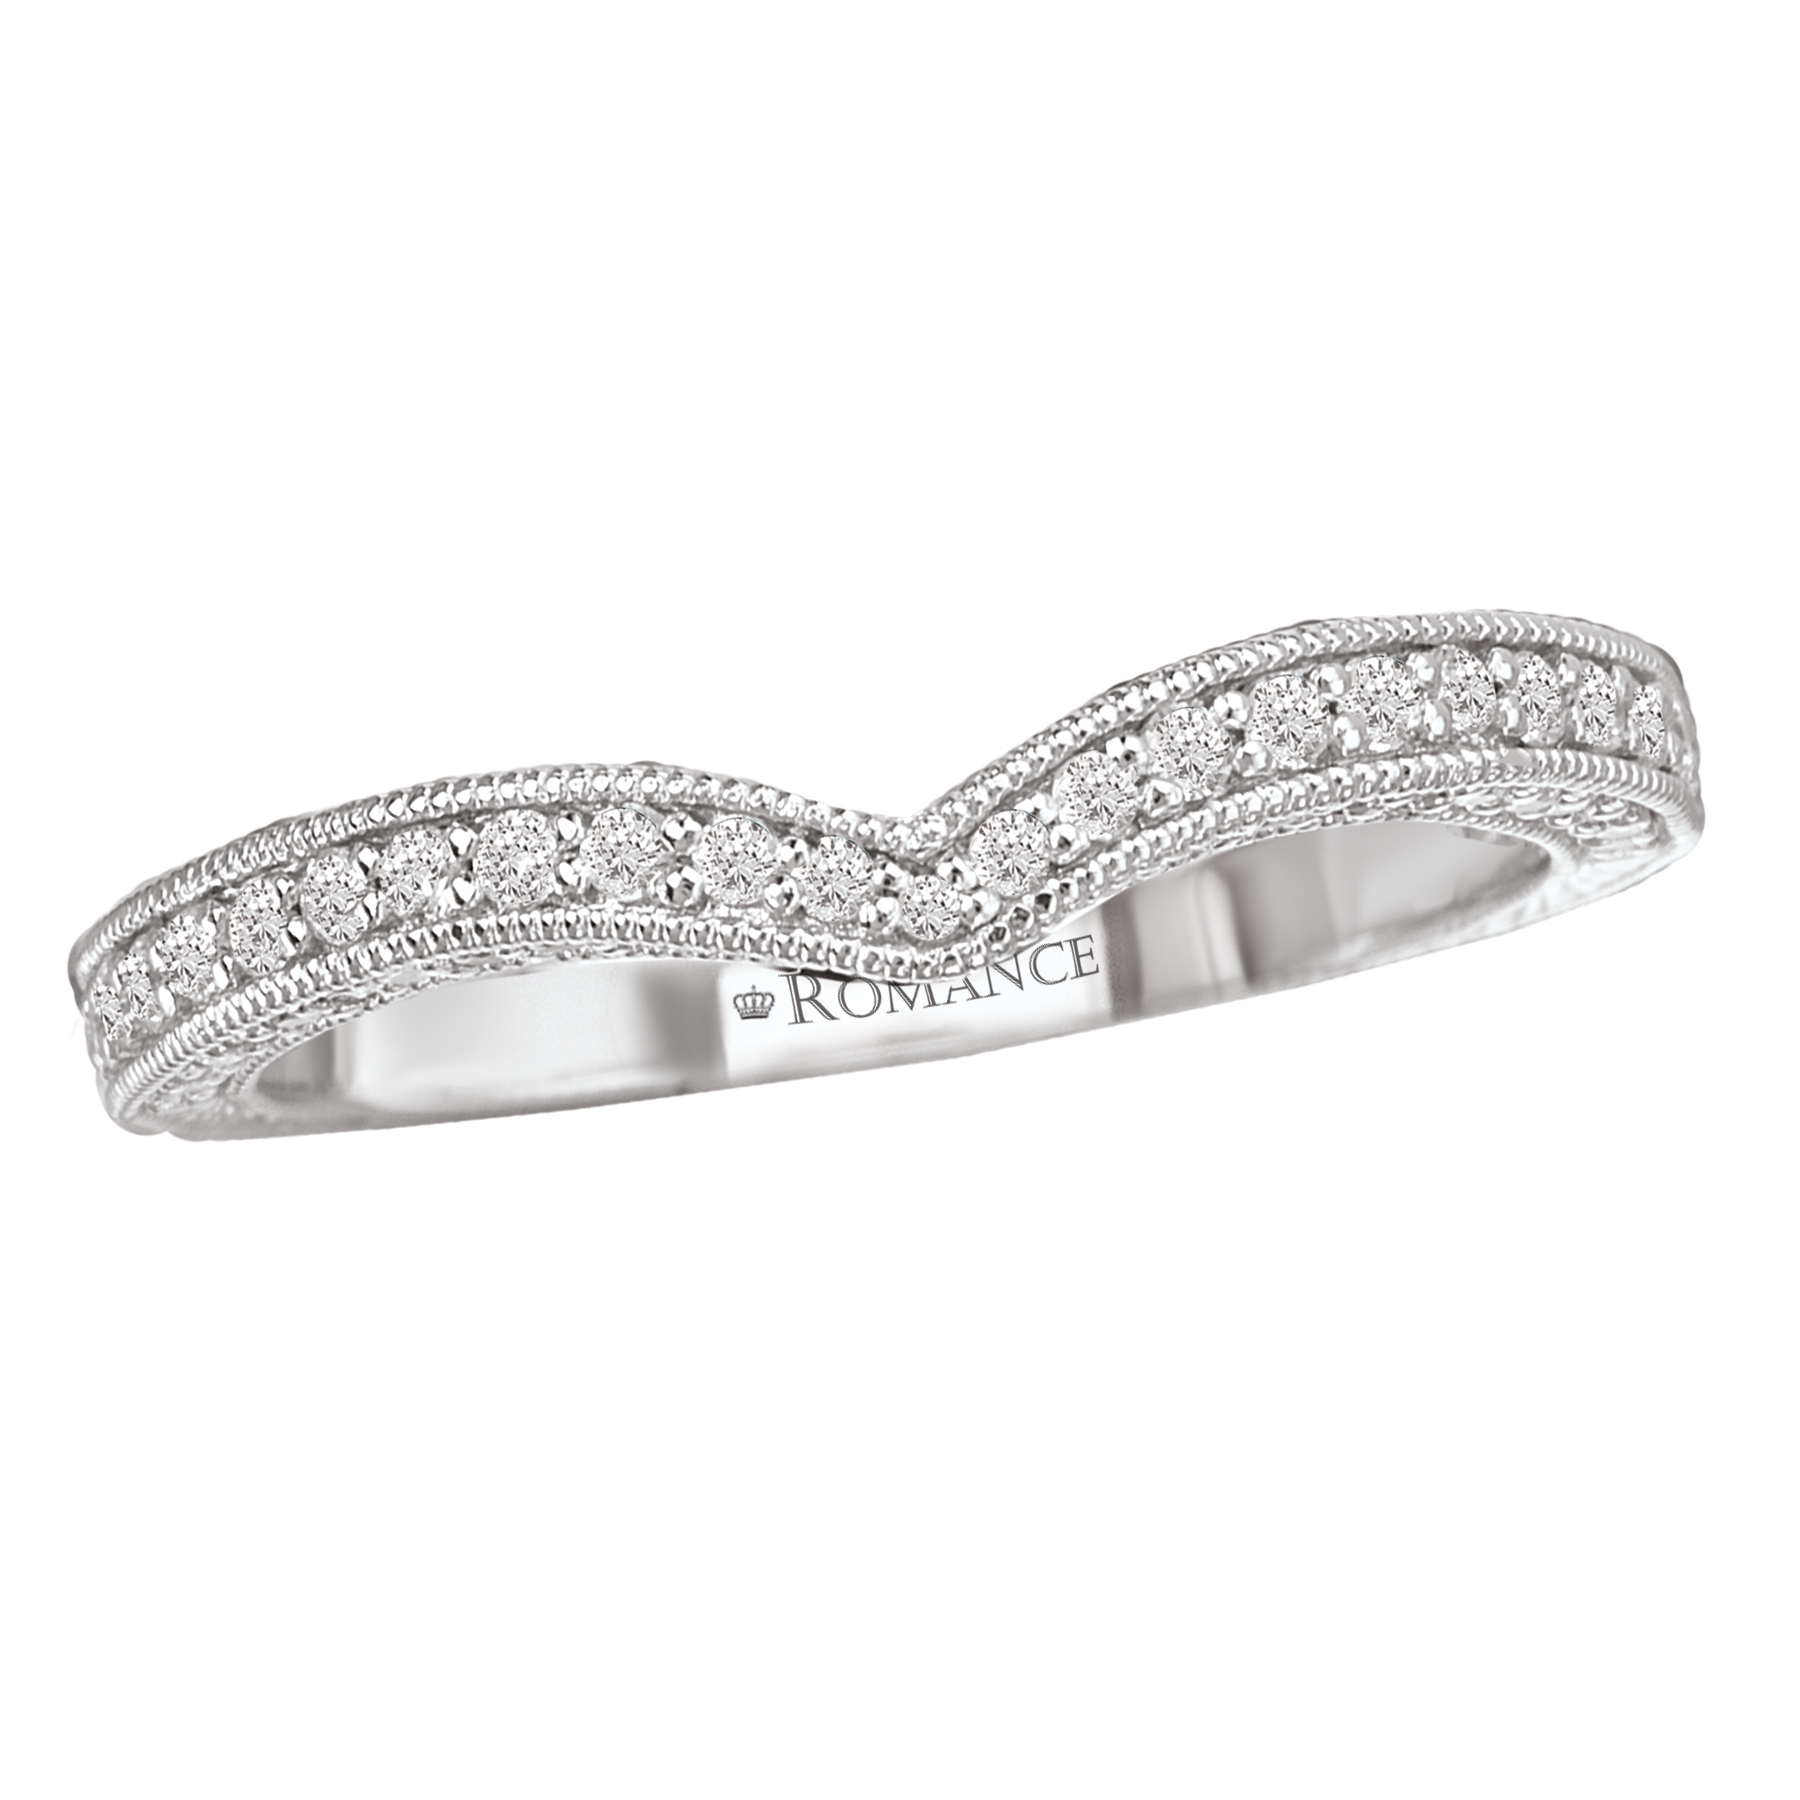 Romance Wedding Bands 117434-100W product image